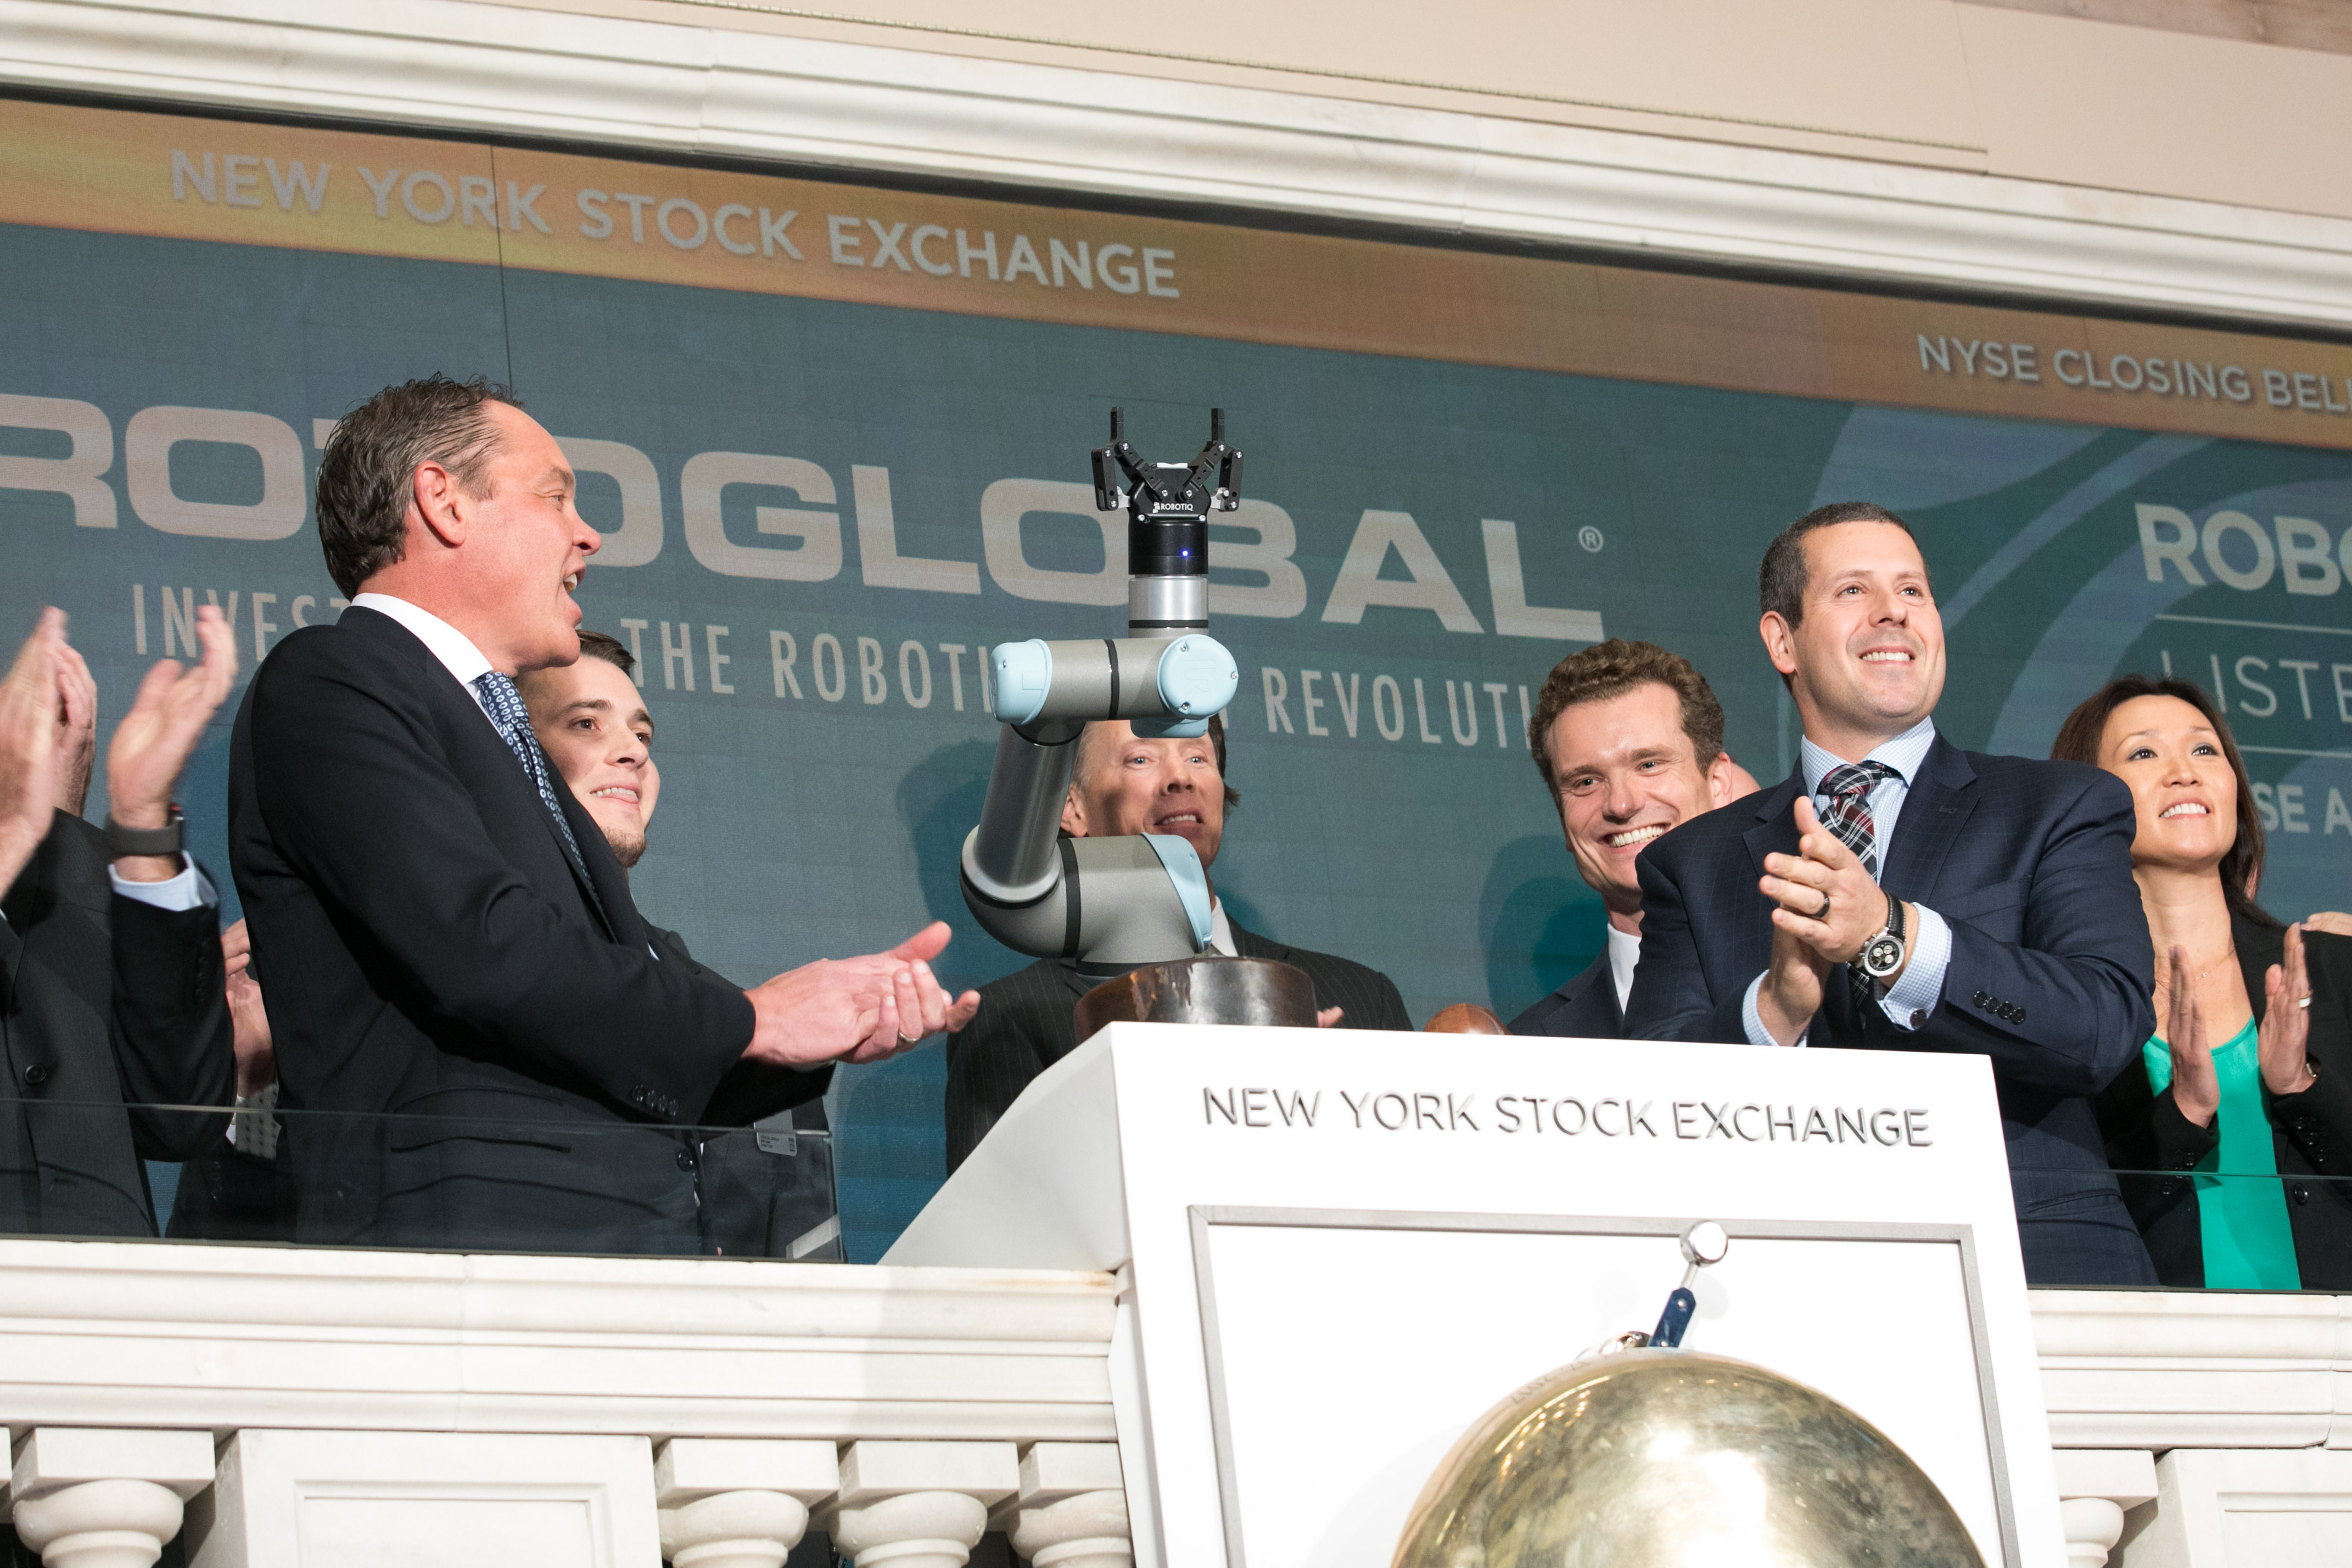 Robotiq Rings the NYC Stock Echange Closing Bell!